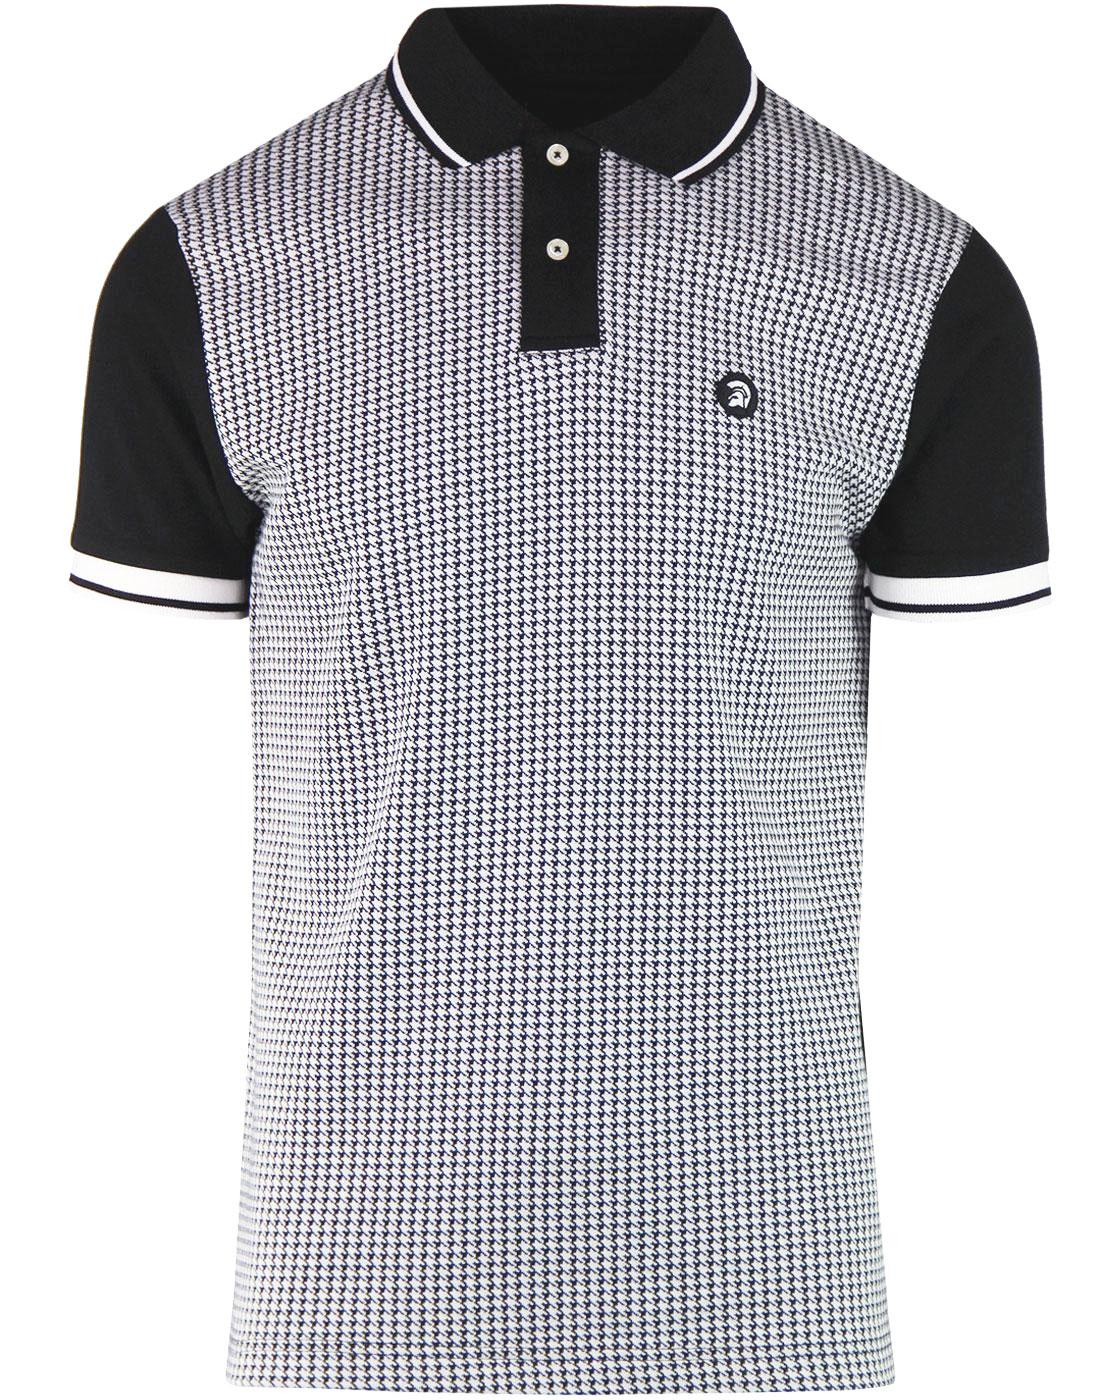 TROJAN RECORDS Men's Ska Mod Tipped Dogtooth Polo